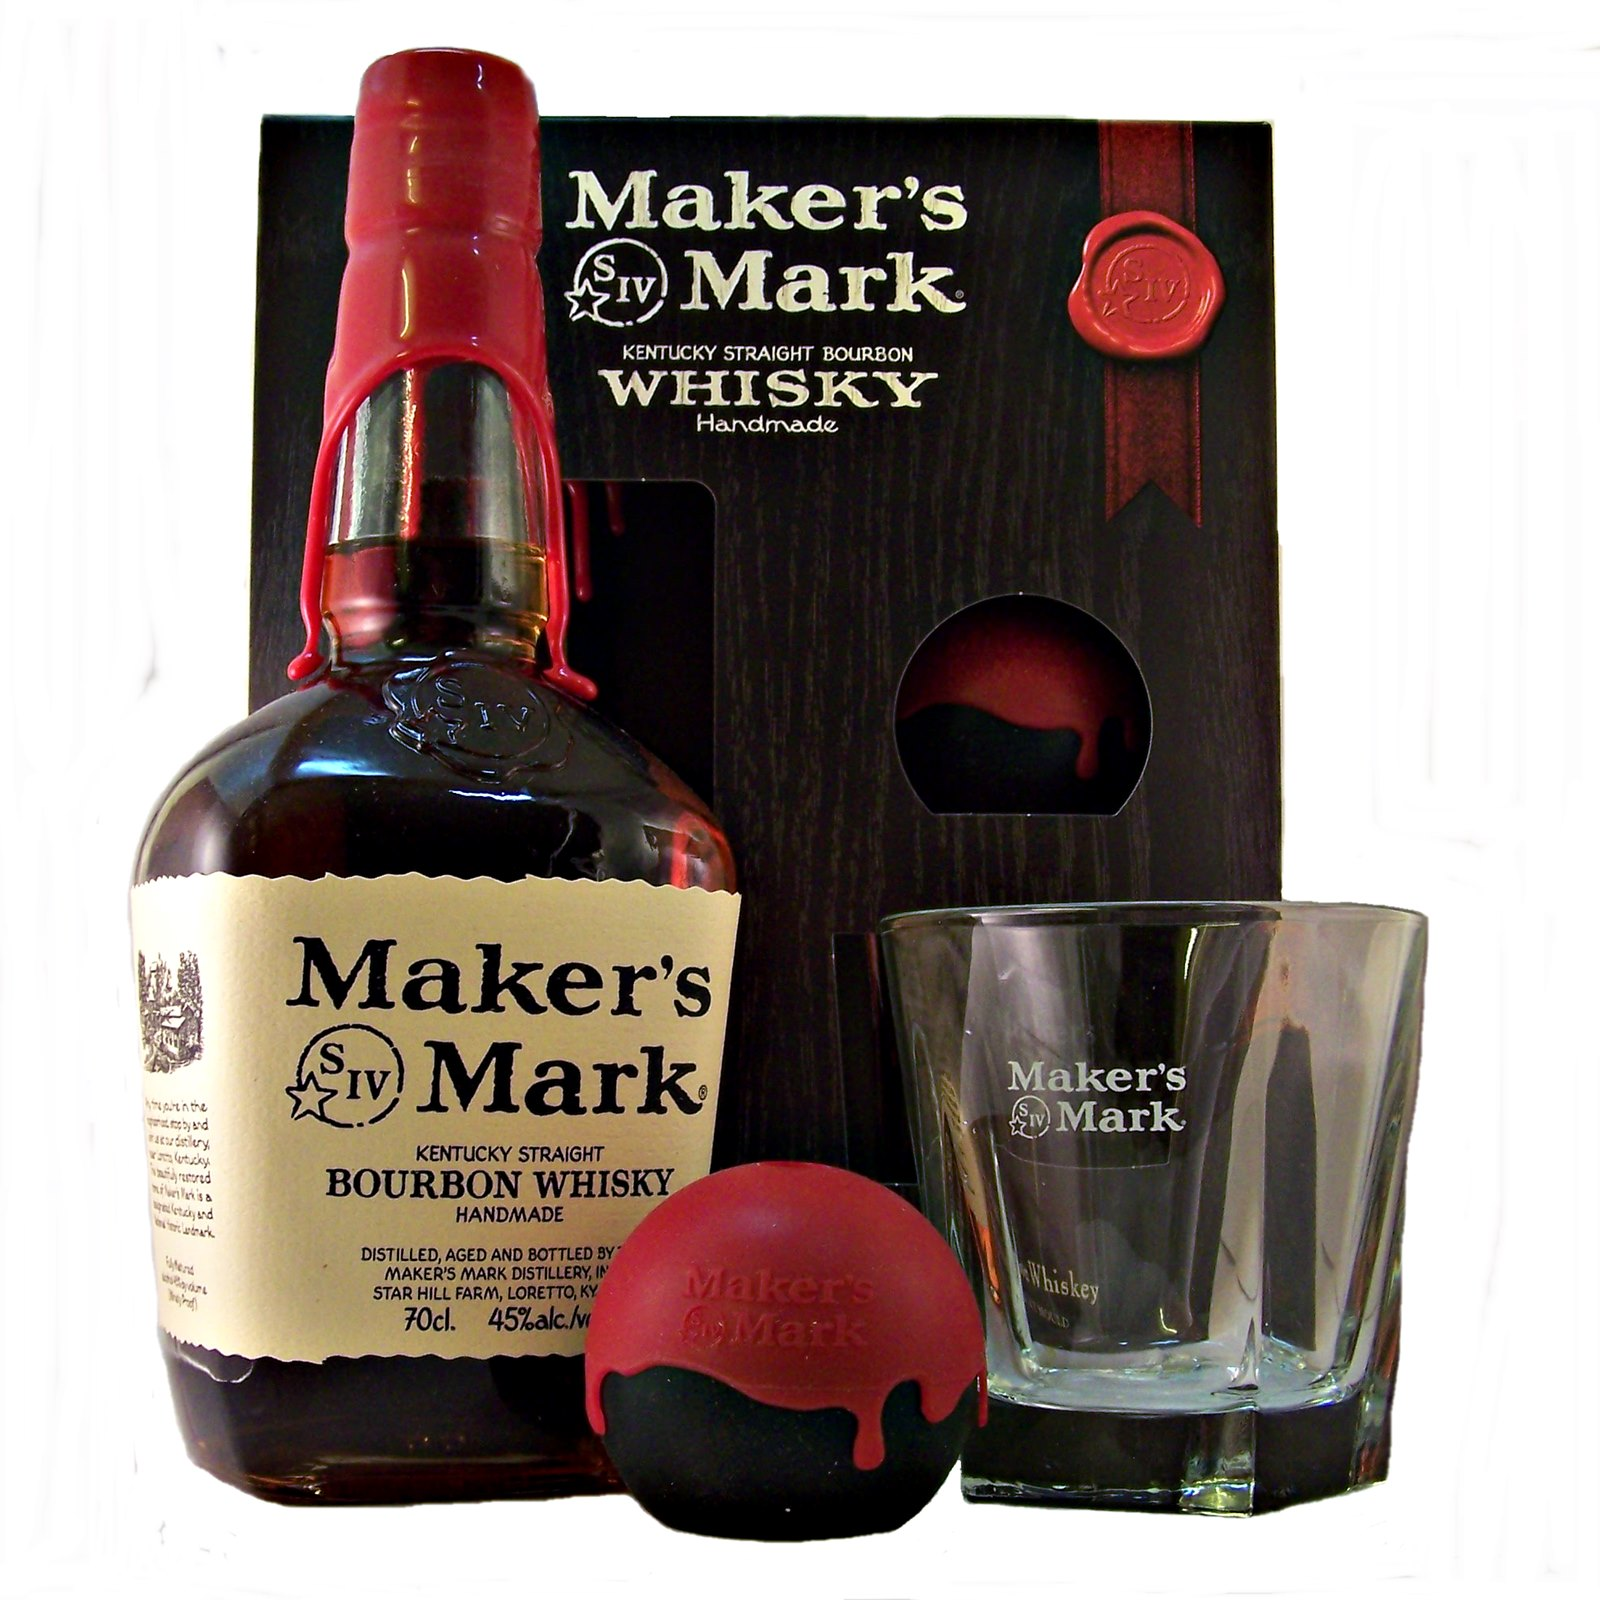 Whisky The Perfect Gift This Christmas Whisky Gifts